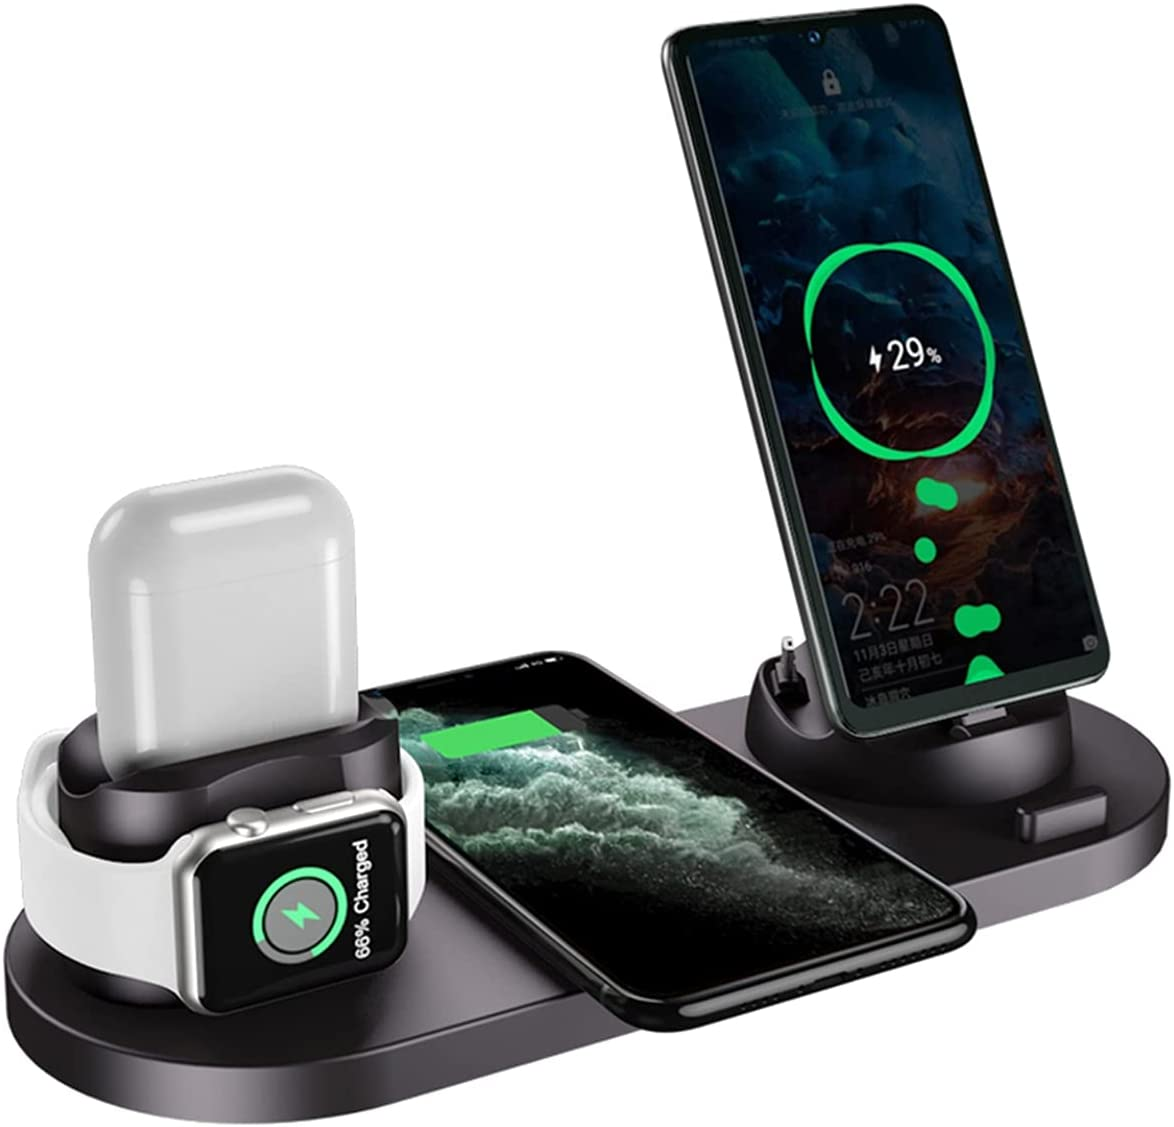 Charging Station for Multiple Devices, 6 in 1 Wireless Charging Stand for Apple Watch Airpods Pro iPhone 12/11/11 Pro Max/XS Samsung Galaxy S10/S9/S8/S7